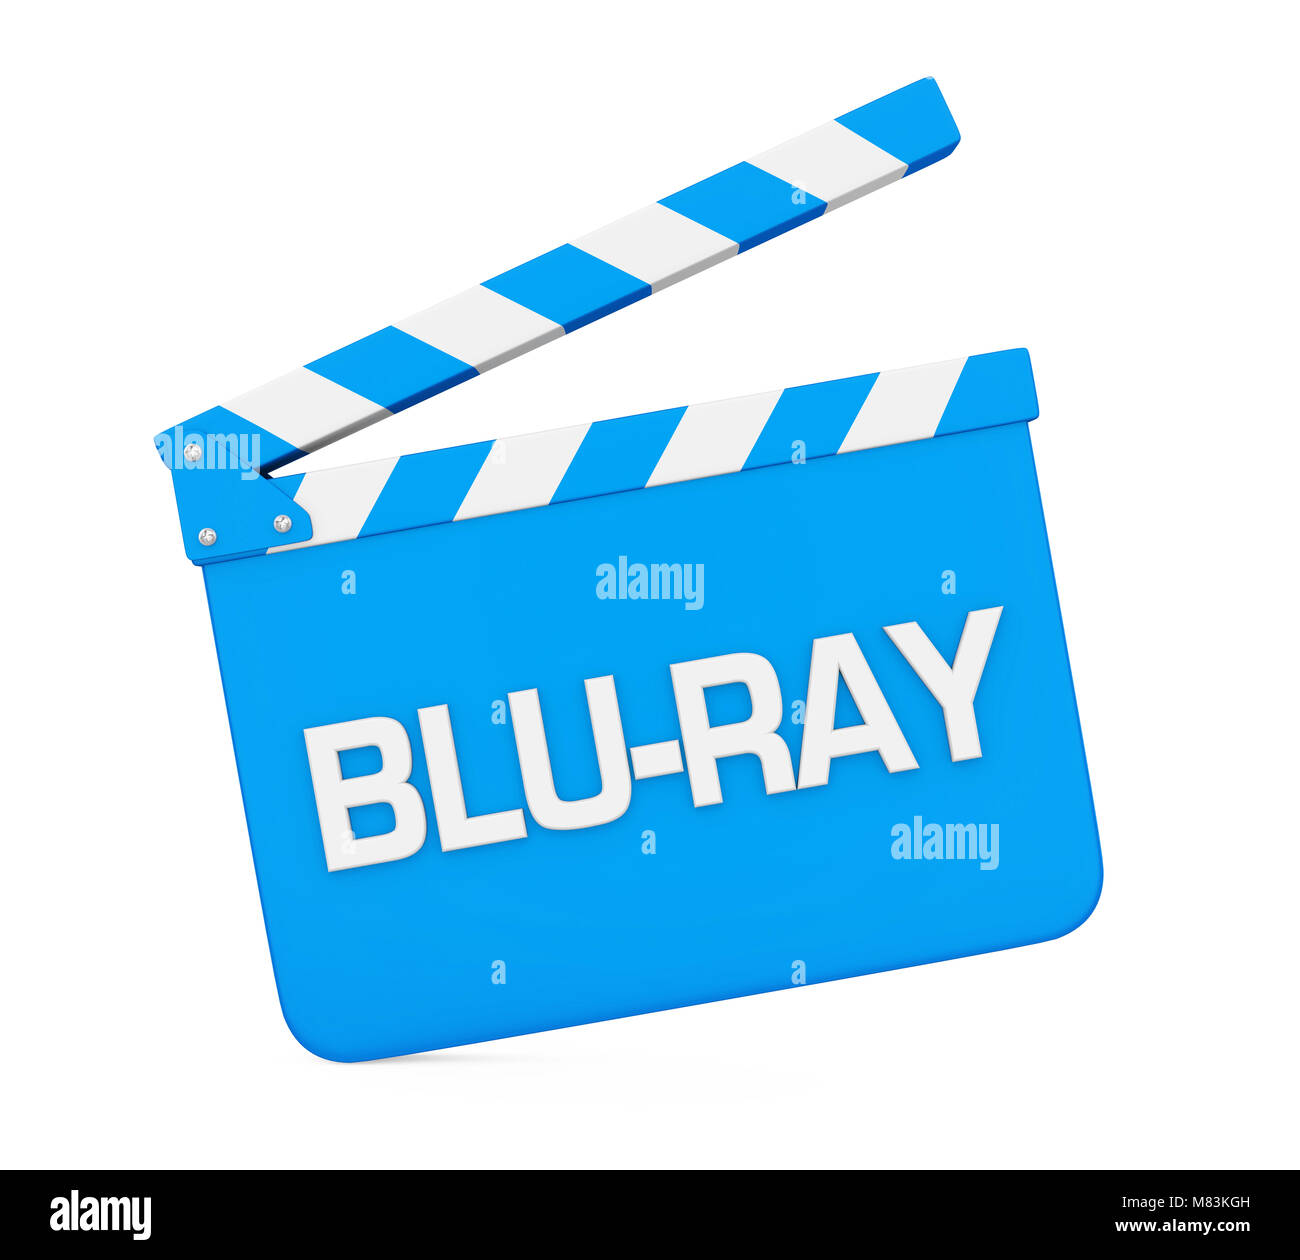 Movie Slate with 'Blu-Ray' Text Isolated - Stock Image